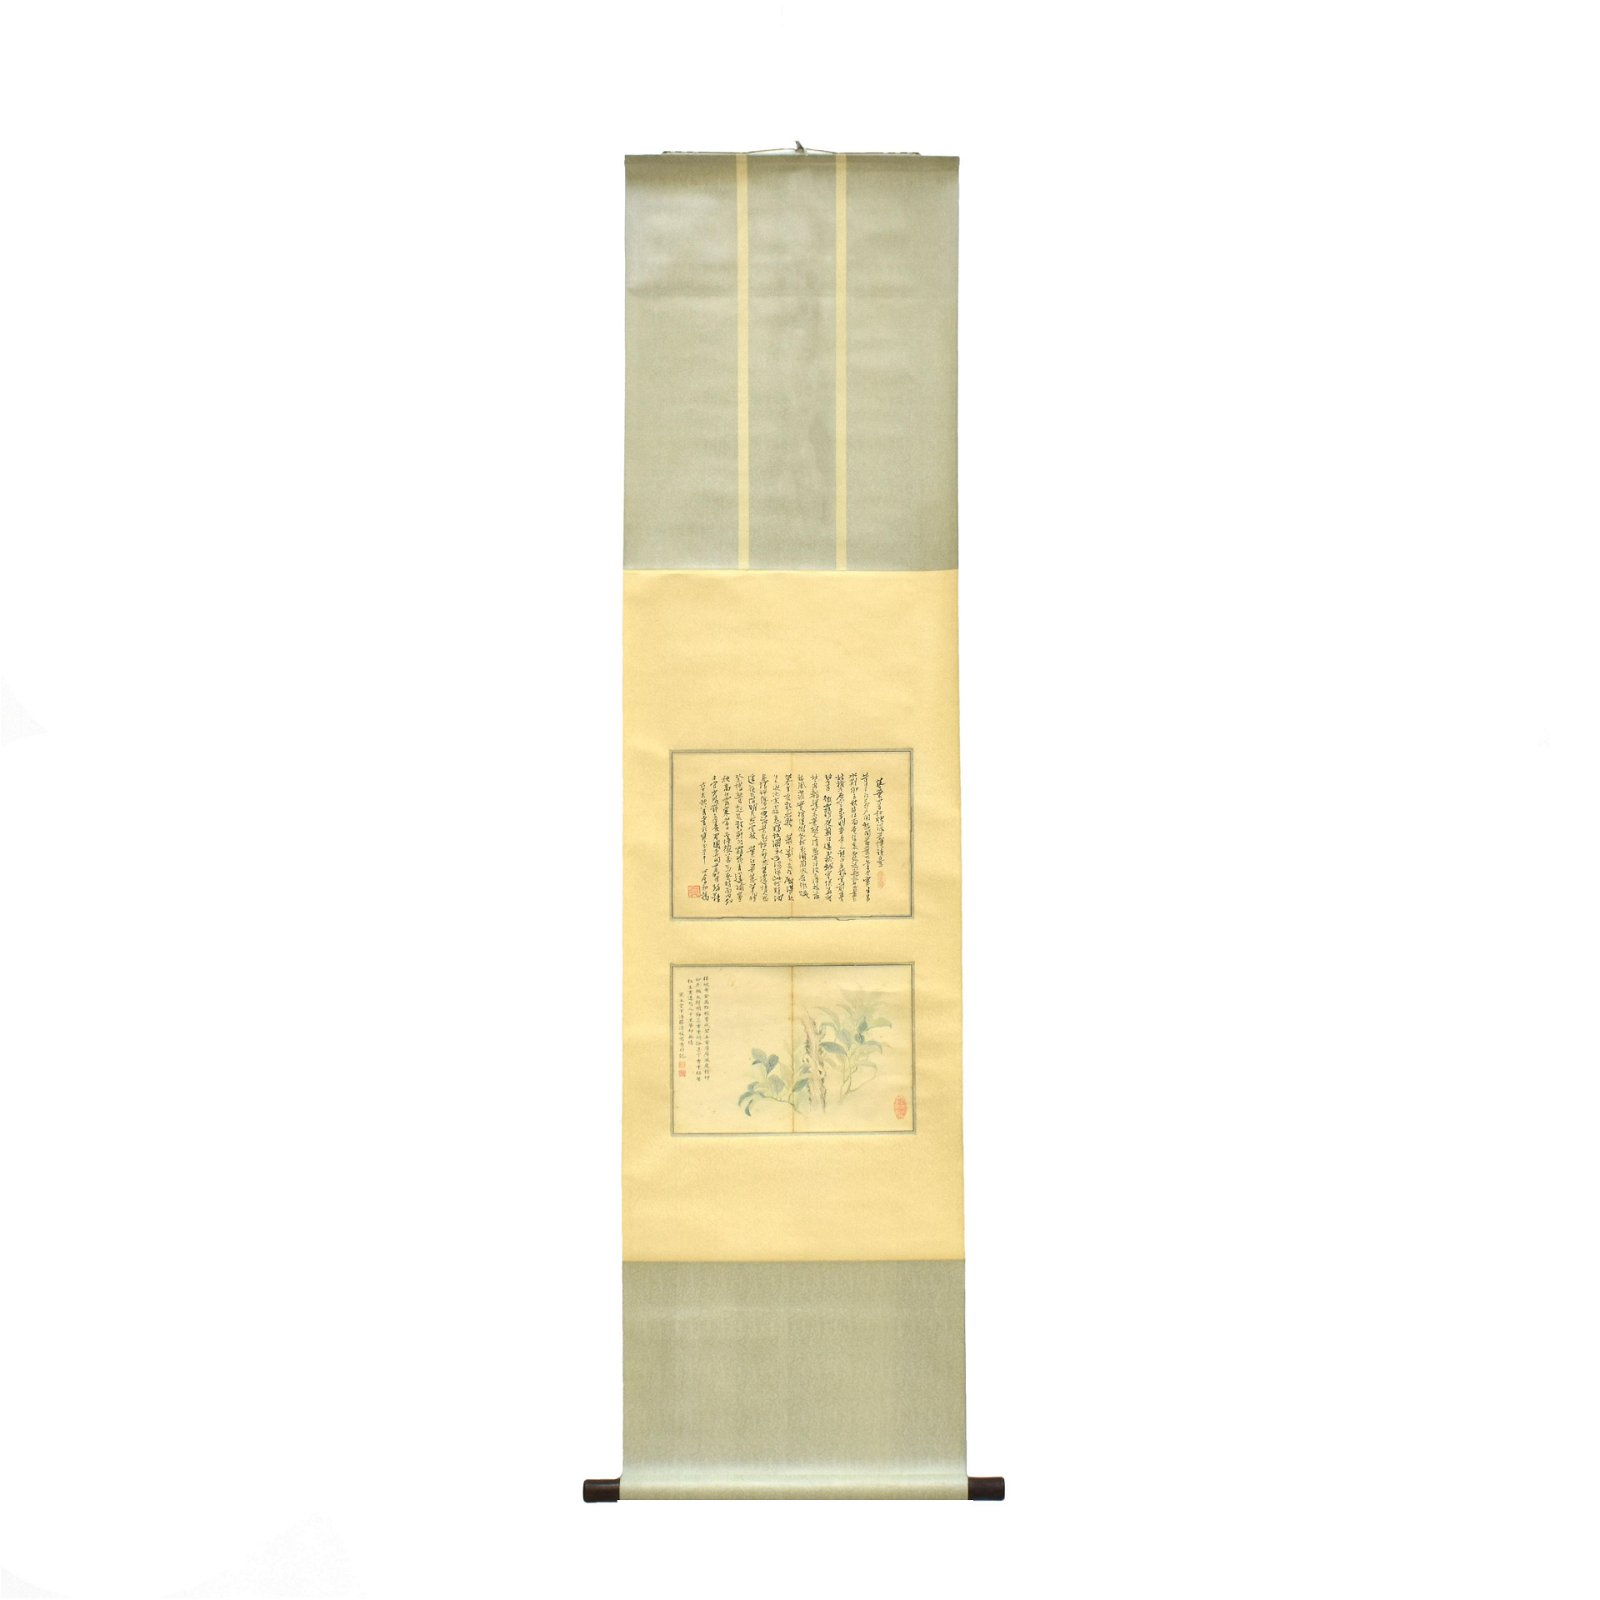 CHINESE SCROLL PAINTING & CALLIGRAPHY OF FLOWER